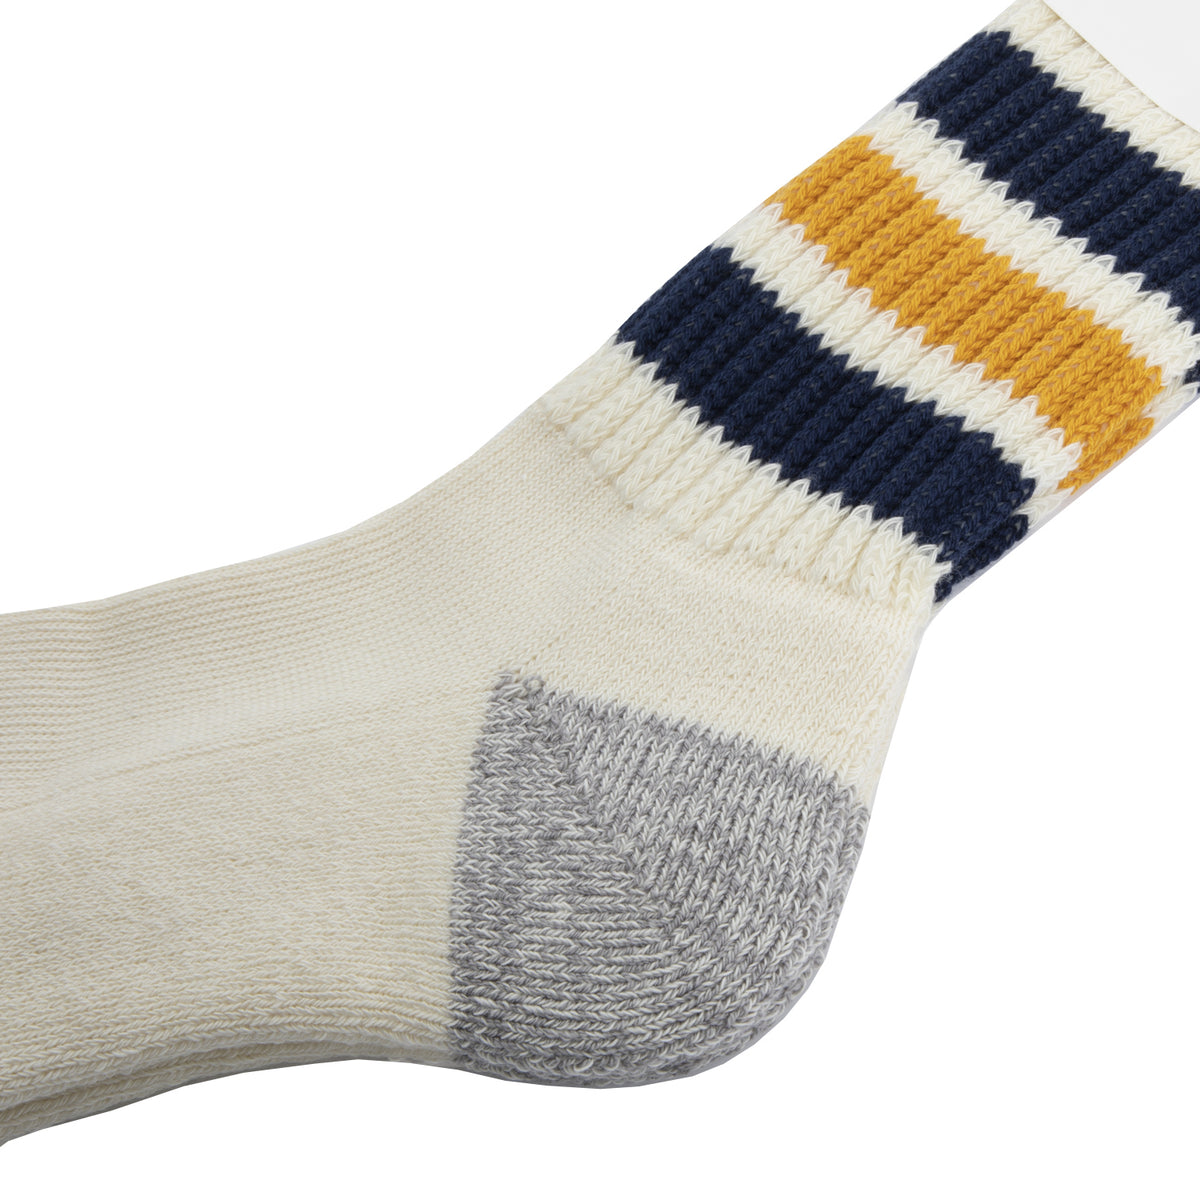 Rototo - Coarse Ribbed Old School Socks - Navy/Yellow